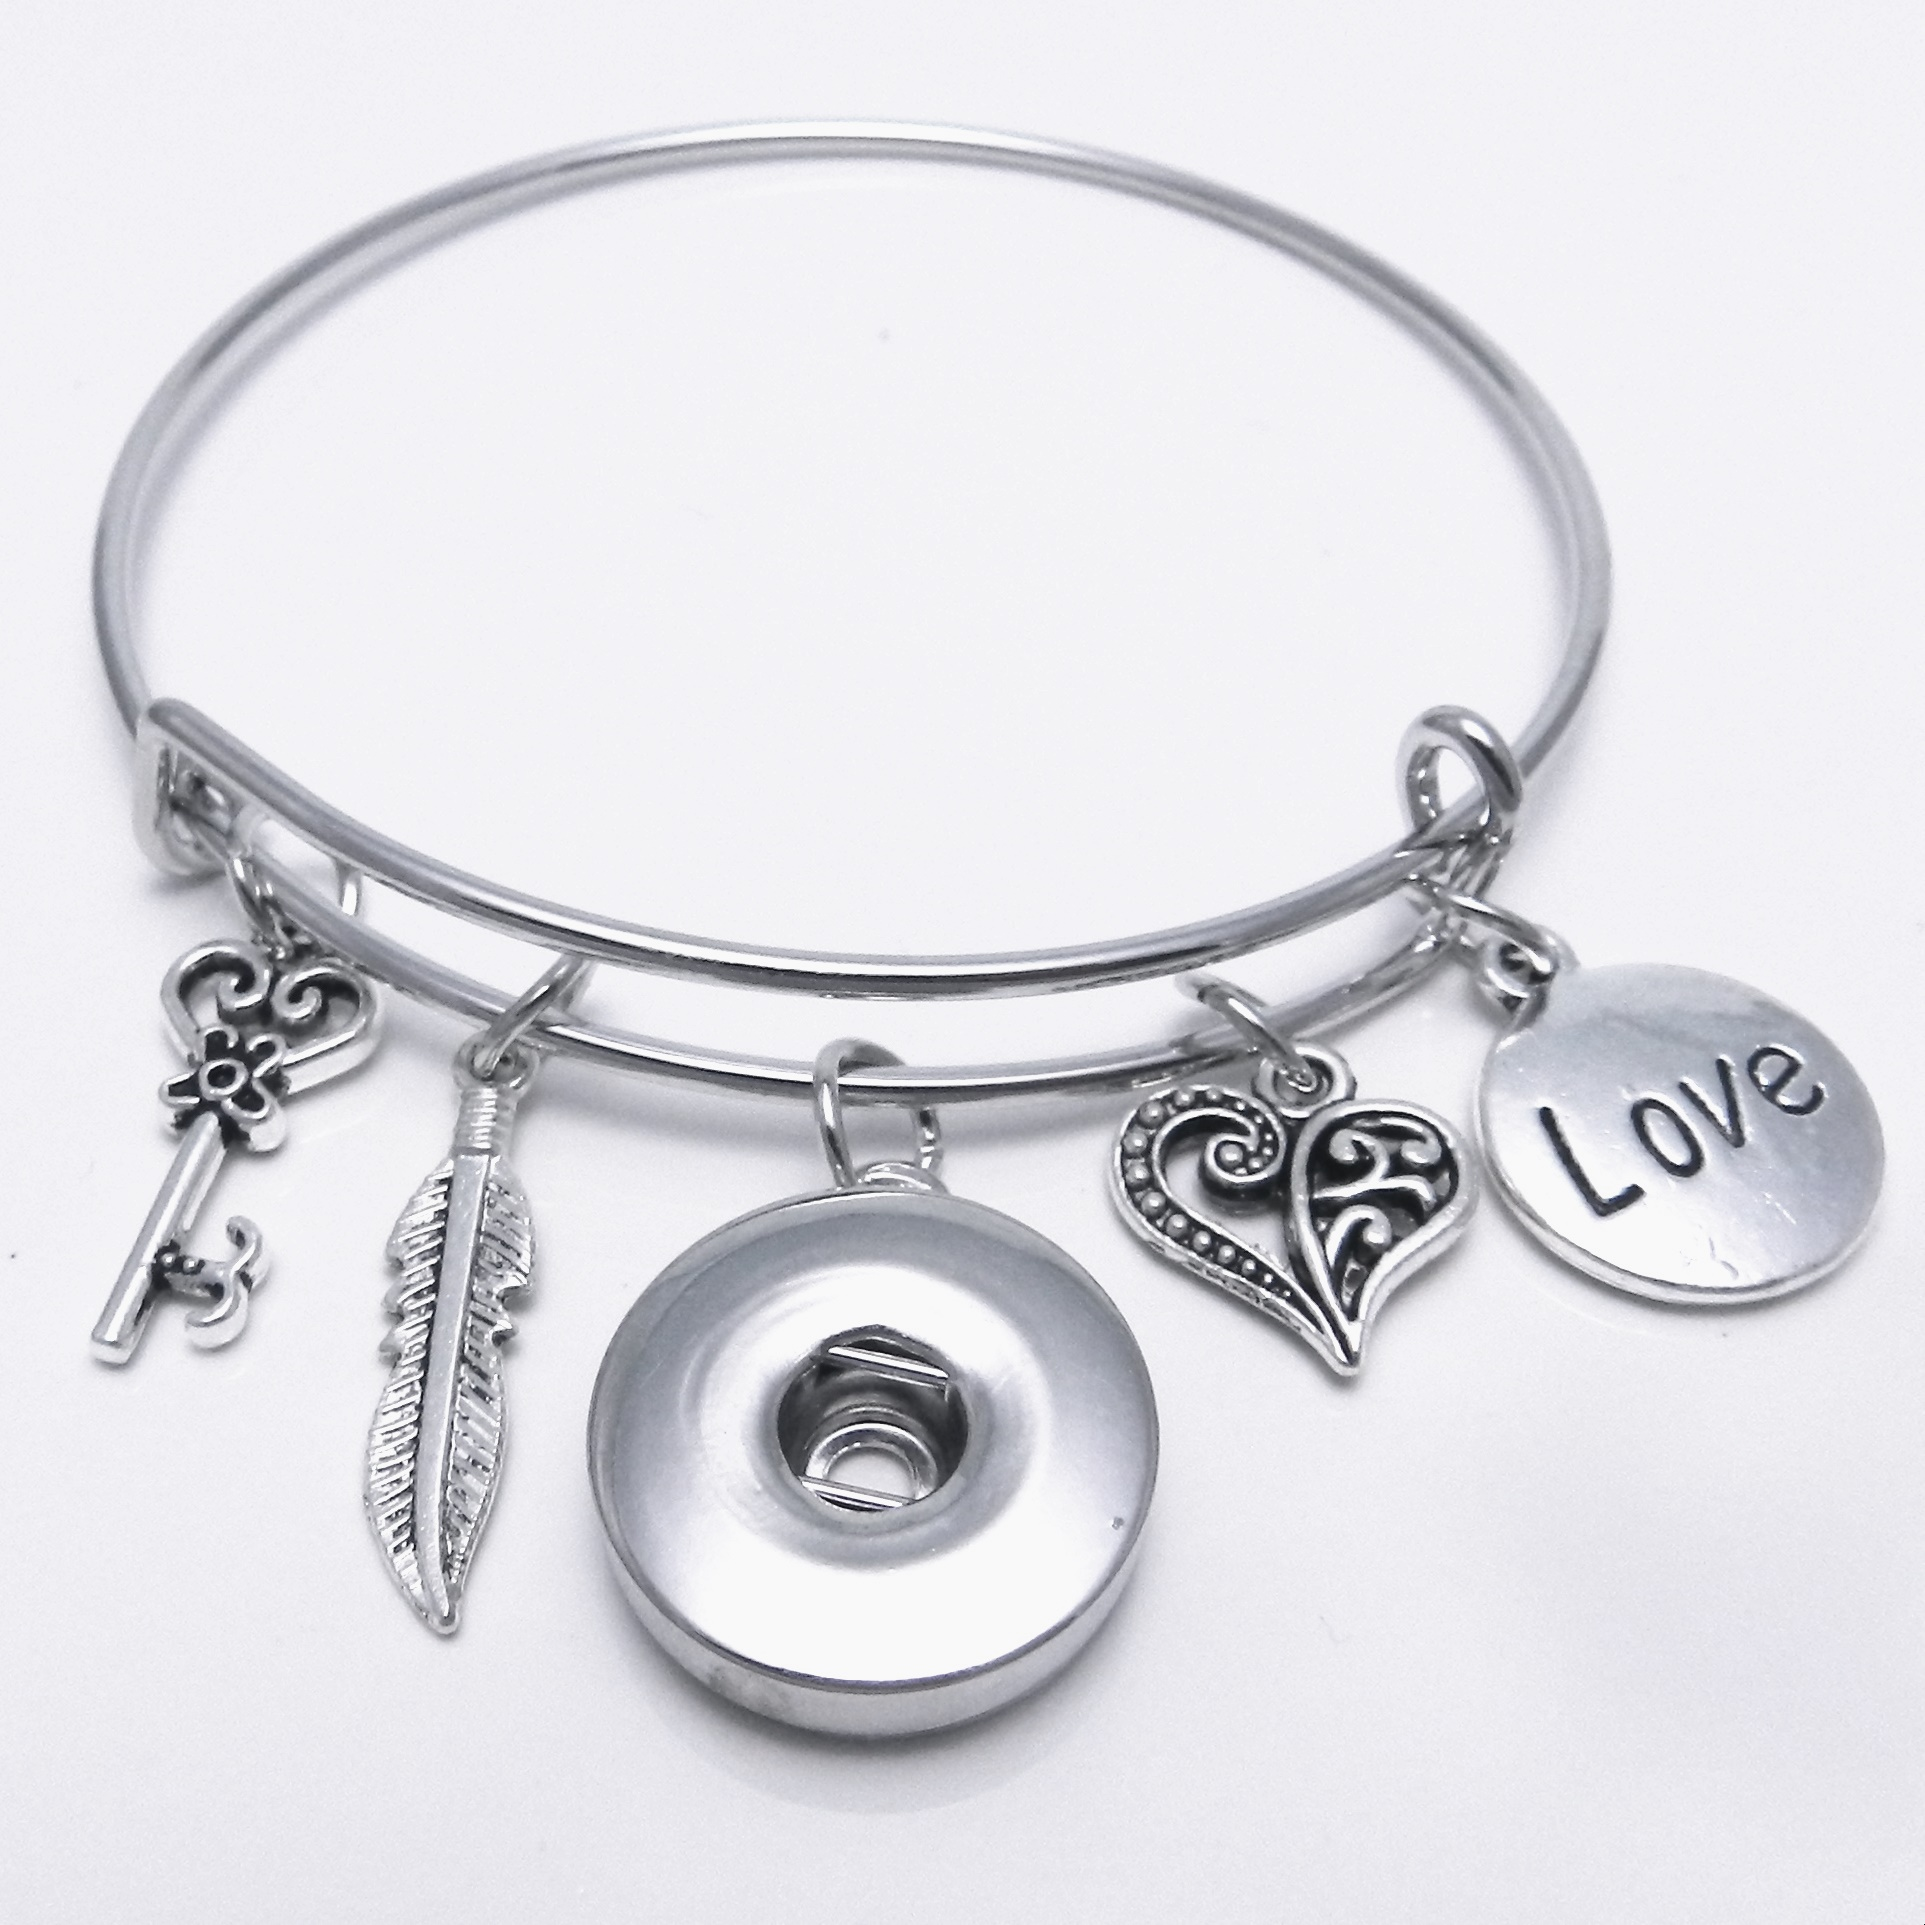 Snap Jewelry Wire Expandable Bangle - Love, Feather, Key & Heart